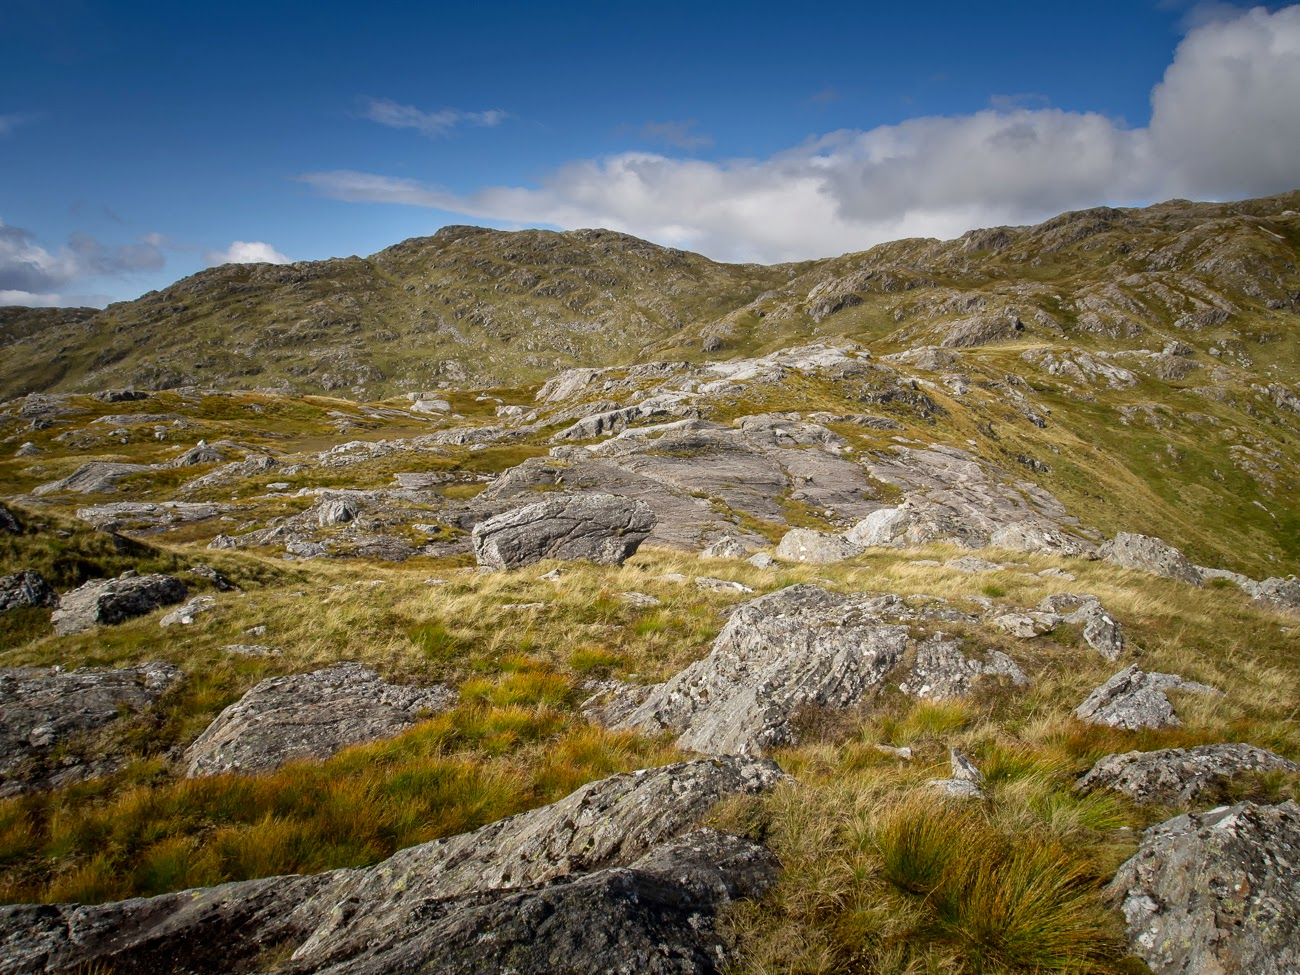 photo of the moon scape slopes of Sgurr an Utha, Lochaber